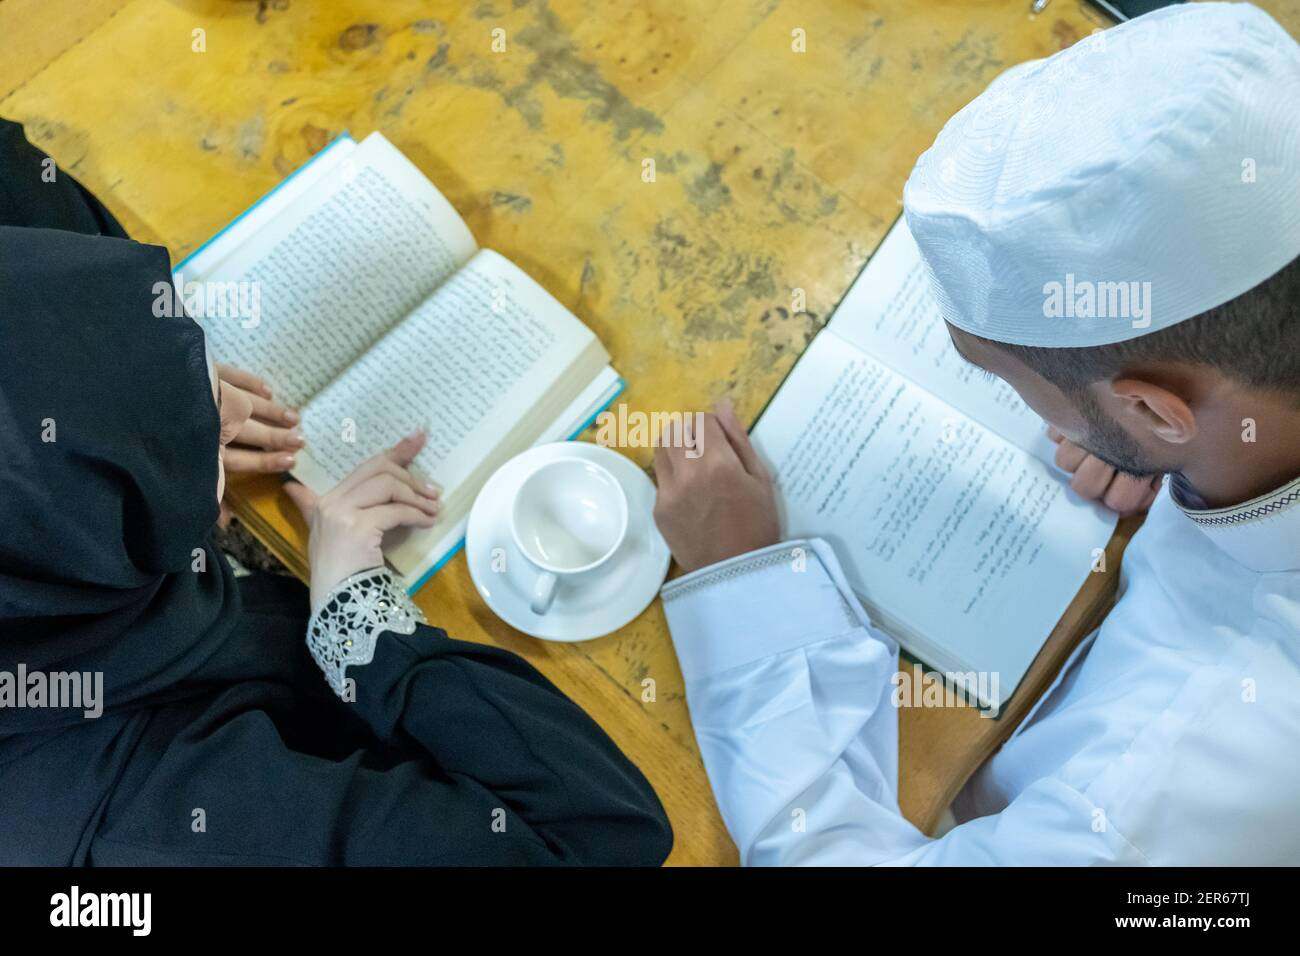 Arabic muslim people reading together and drnking some tea Stock Photo